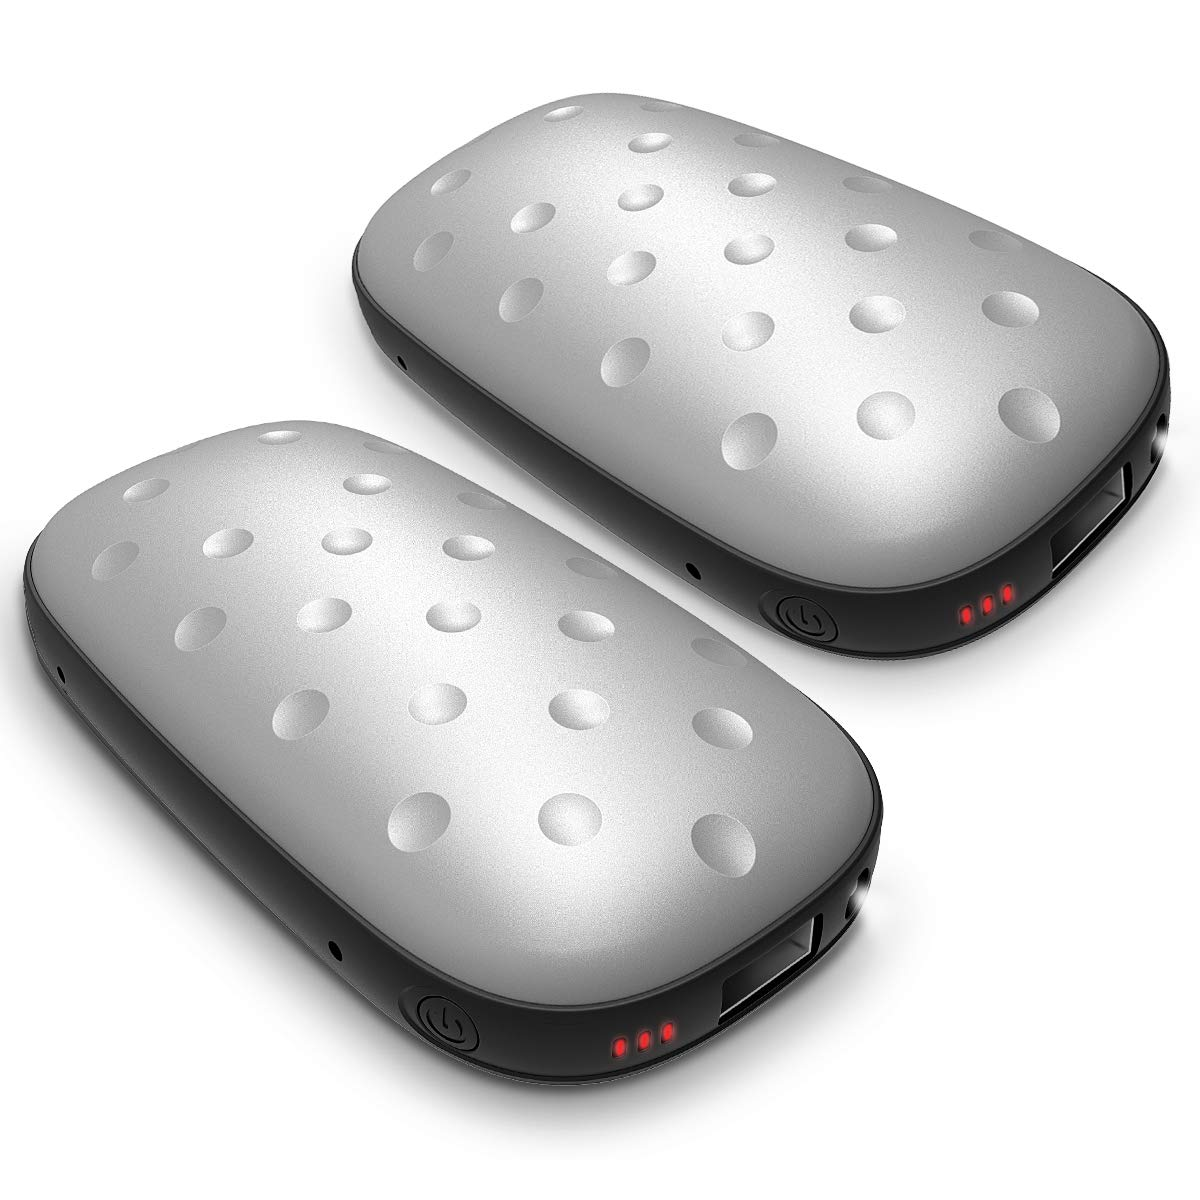 UTOPER Electric Hand Warmers [2 Pack] 5200mAh Rechargeable USB Pocket Hand Warmer Double-Side Heating Portable Phone Battery Charger Power Bank Winter Gift for Lover Parents Kids (Silver) by UTOPER